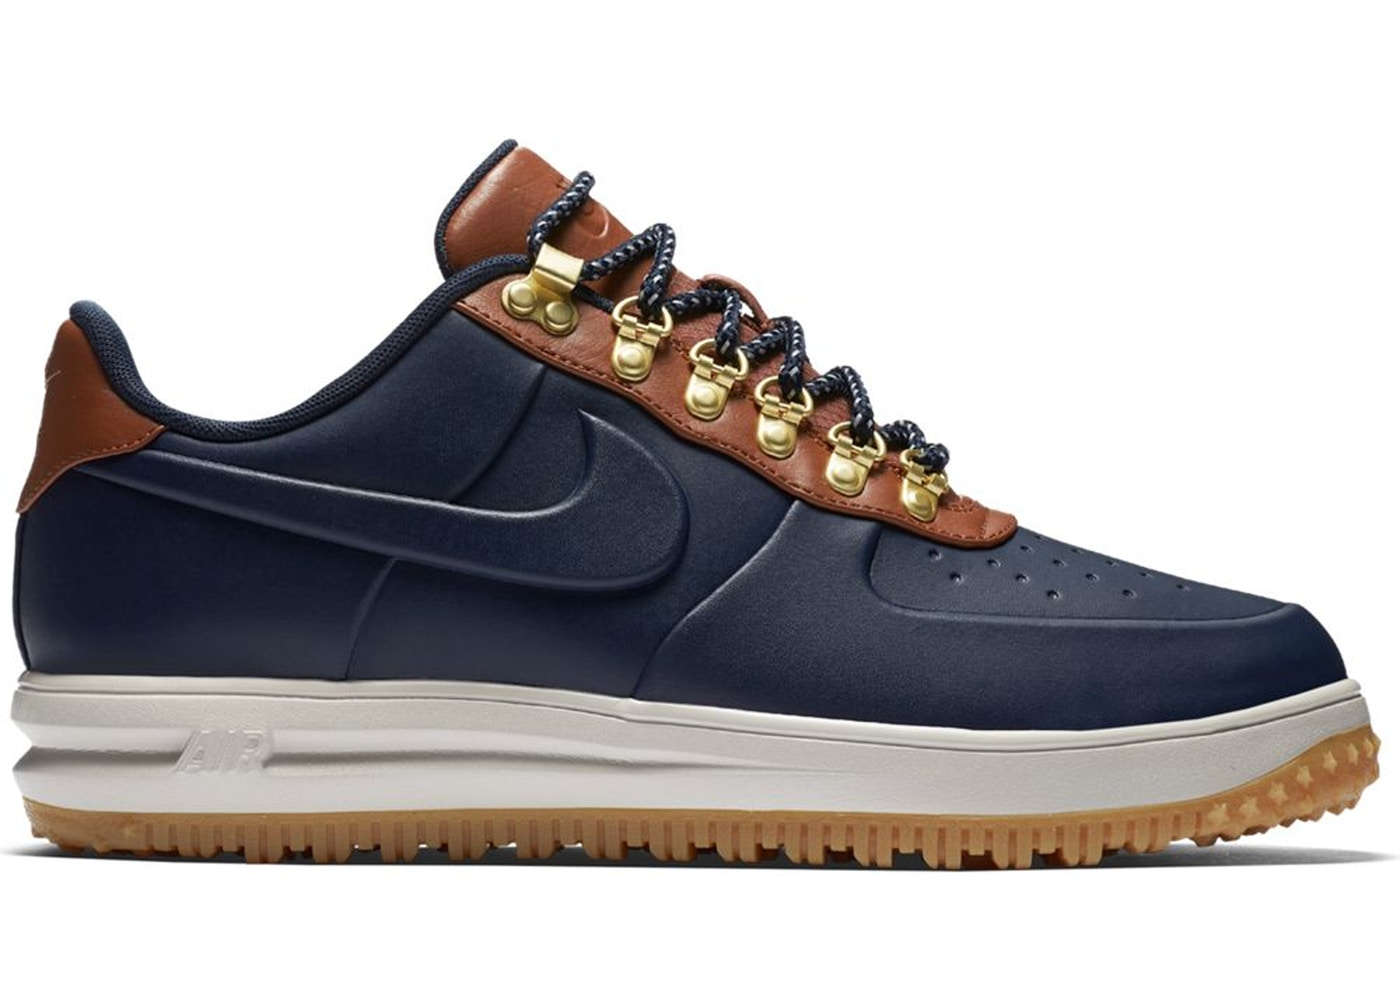 40ffdddb6d15 Sell. or Ask. Size  12.5. View All Bids. Nike Lunar Force 1 Duckboot Low  Obsidian ...